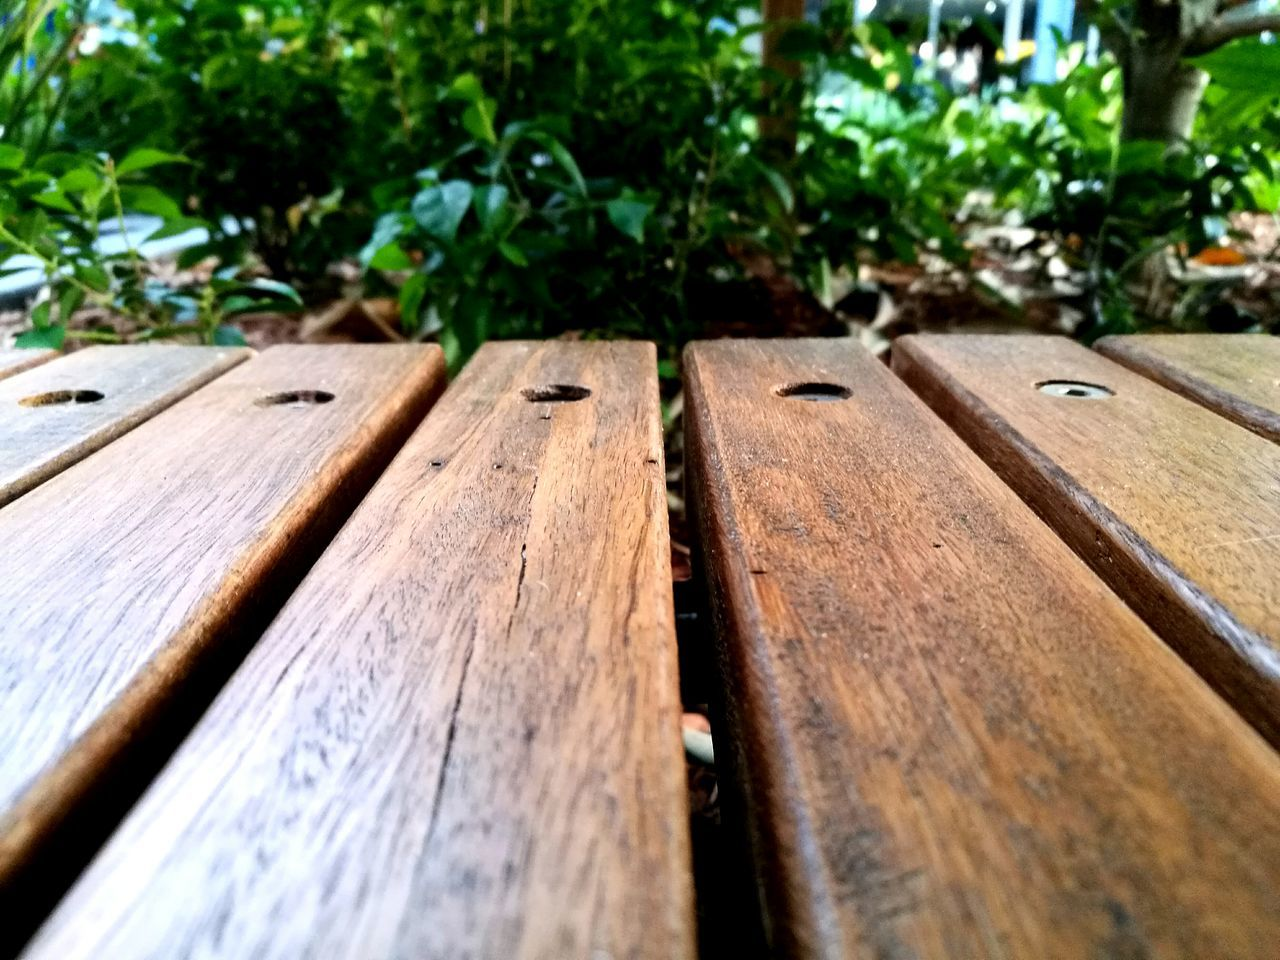 Daydreaming Plants 🌱 Flower Growth Tranquility Green Color Day Plant Flowers Beautifulinnature Naturalbeauty Beautiful No People Low Angle View Tree Tumblr Horizontal Freshness Close-up Wood Wood - Material Wood